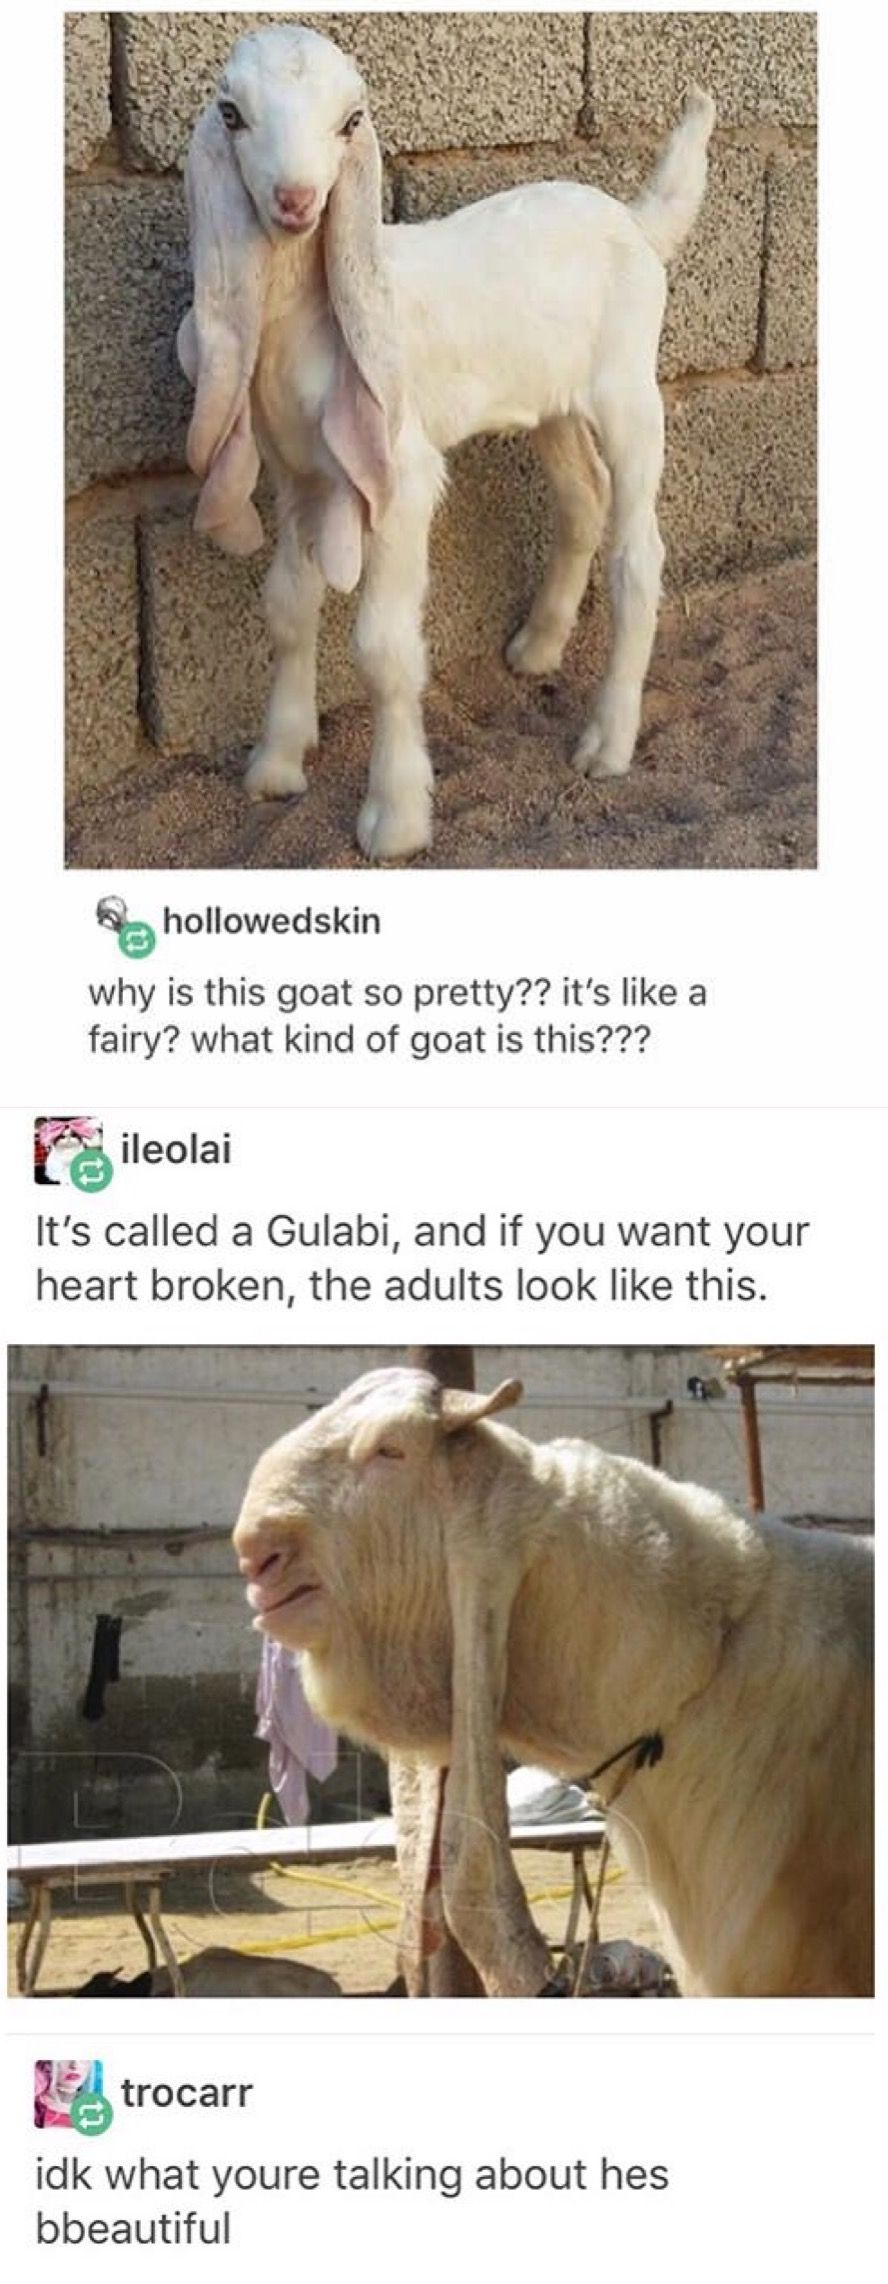 Pin By Georgia Green On Tumblr Funny Funny Animals Funny Cute Animal Memes